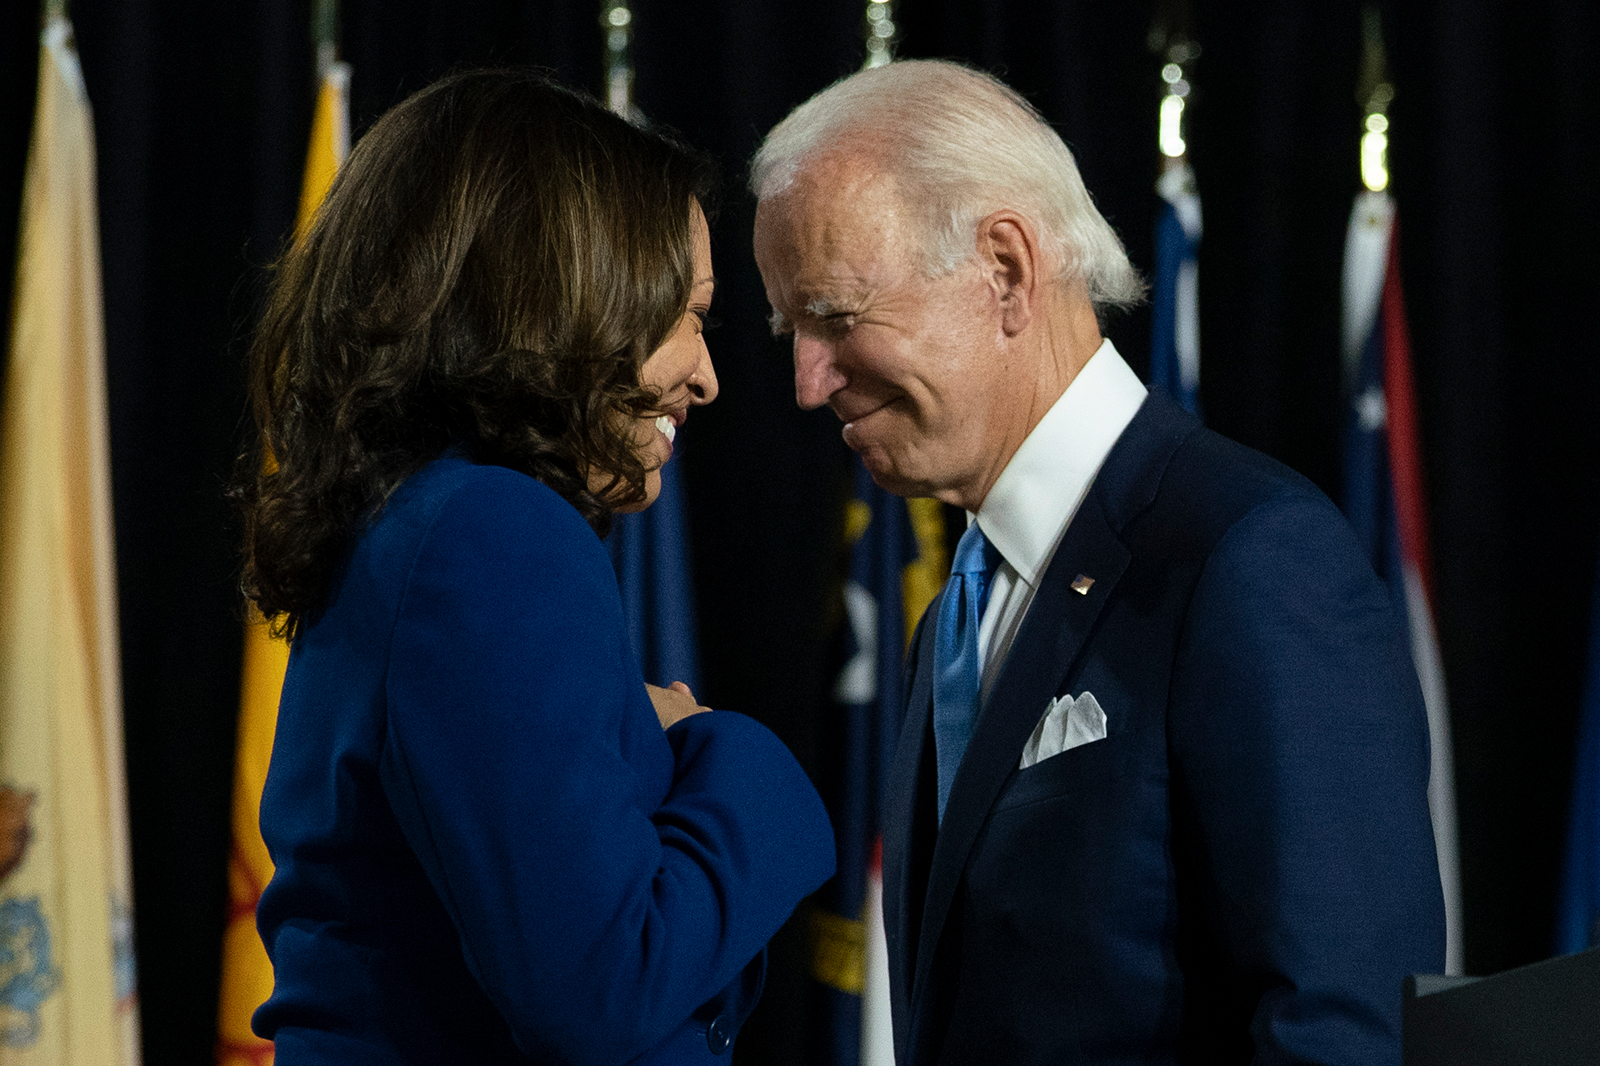 In this Aug. 12, file photo, Democratic presidential candidate former Vice President Joe Biden and his running mate Sen. Kamala Harris, D-Calif., pass each other in Wilmington, Del.